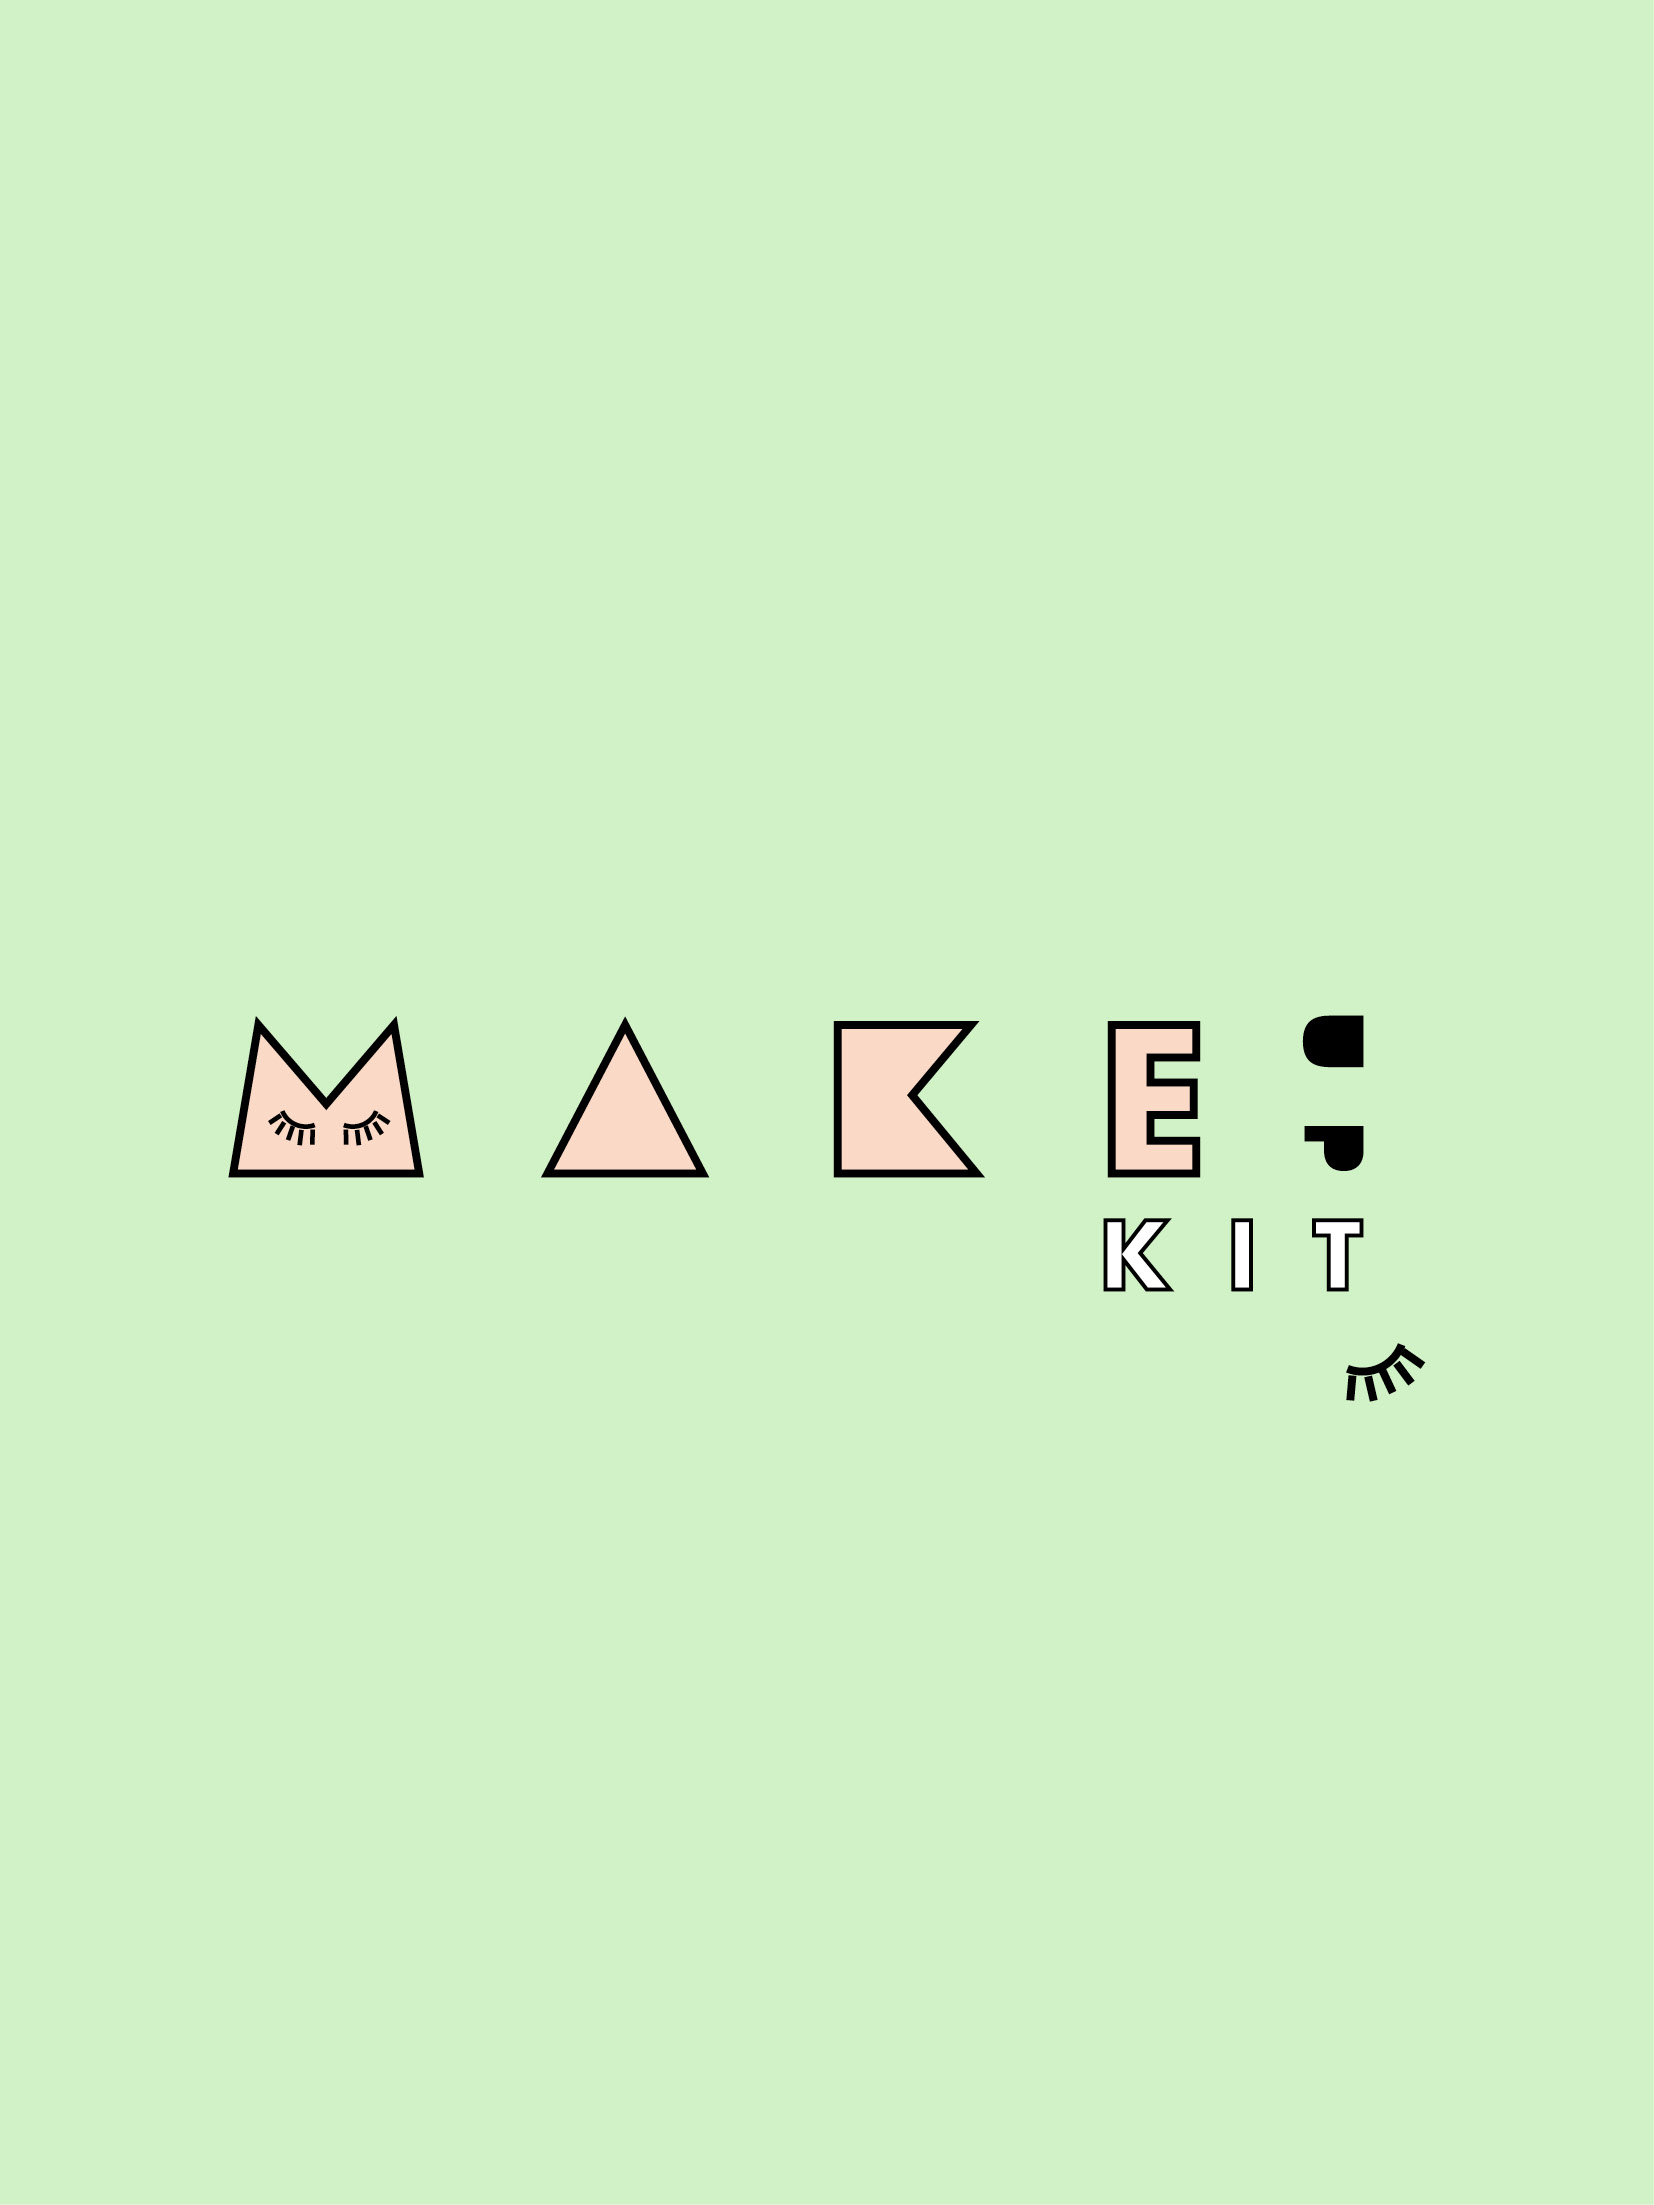 Make-up kit logo